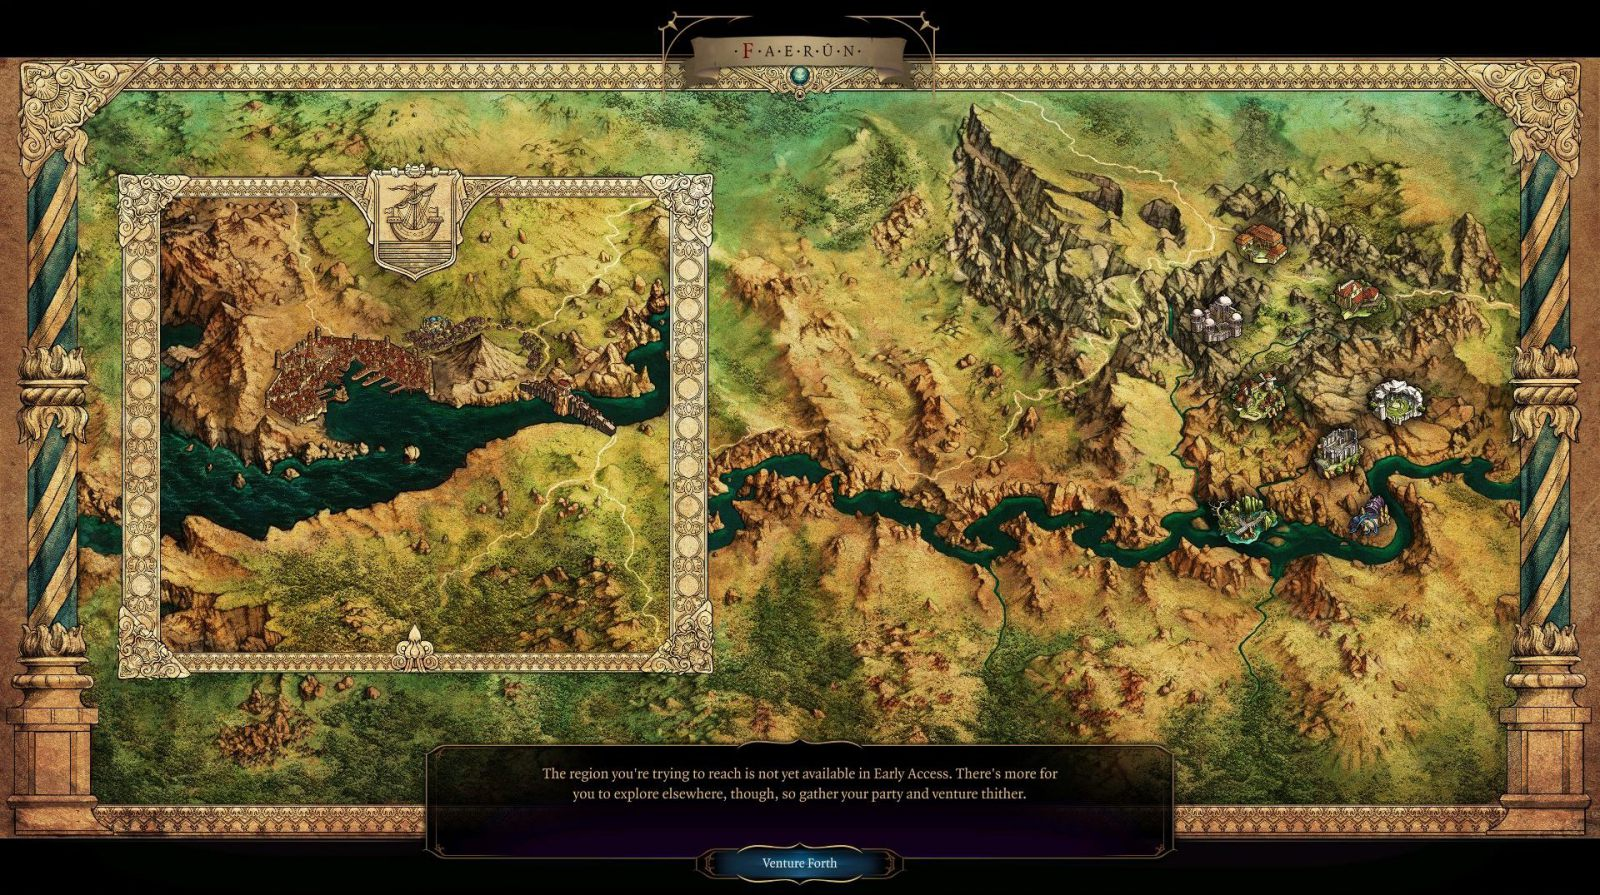 Baldurs Gate 3 - World map